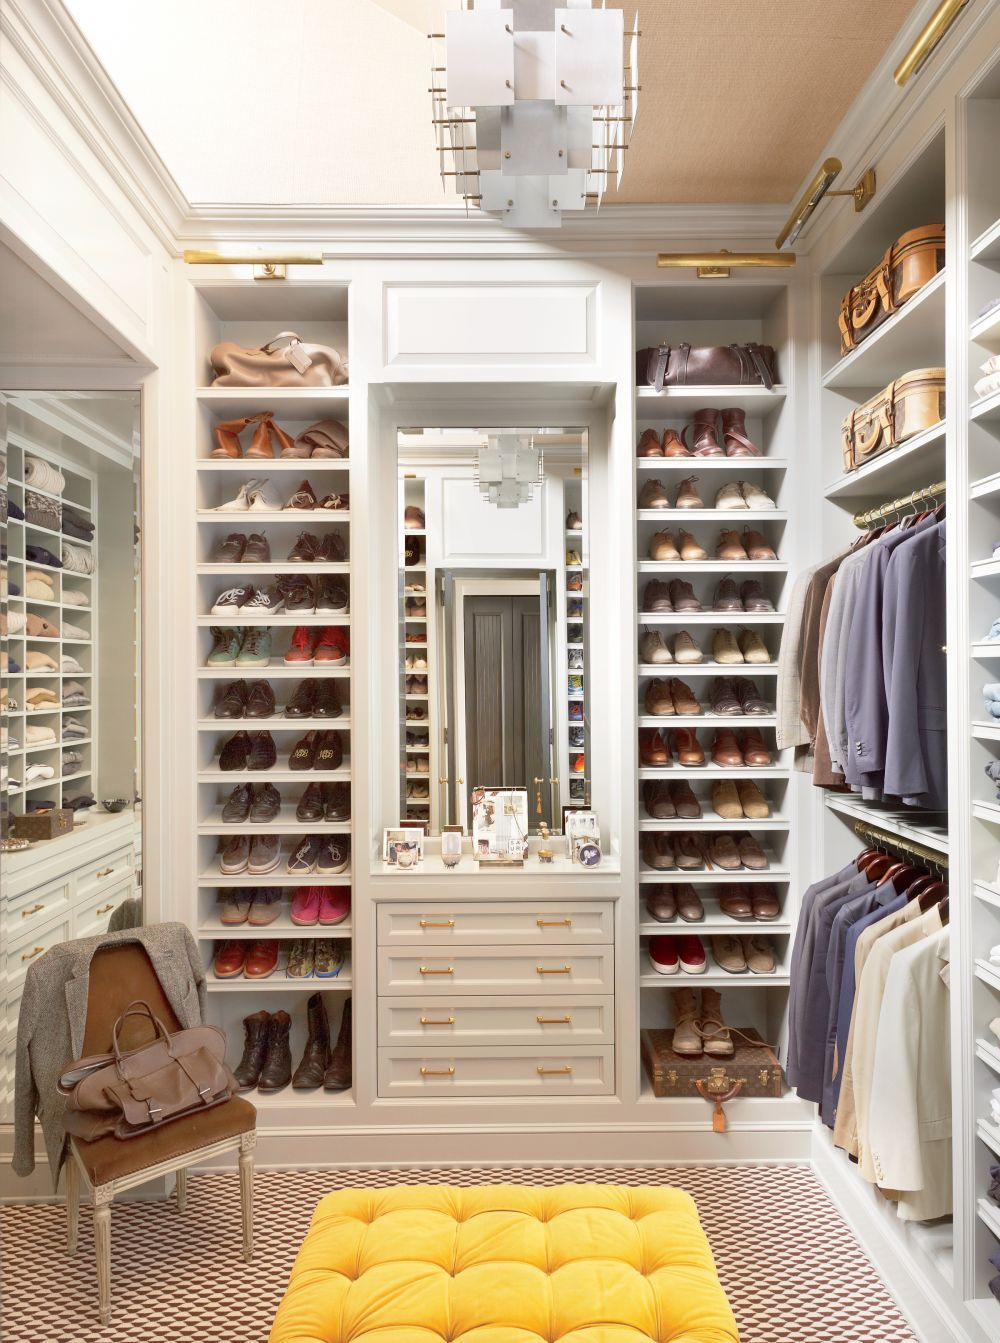 Dressing Rooms 23 Dressing Rooms That Are Sure To Inspire A Closet Makeover